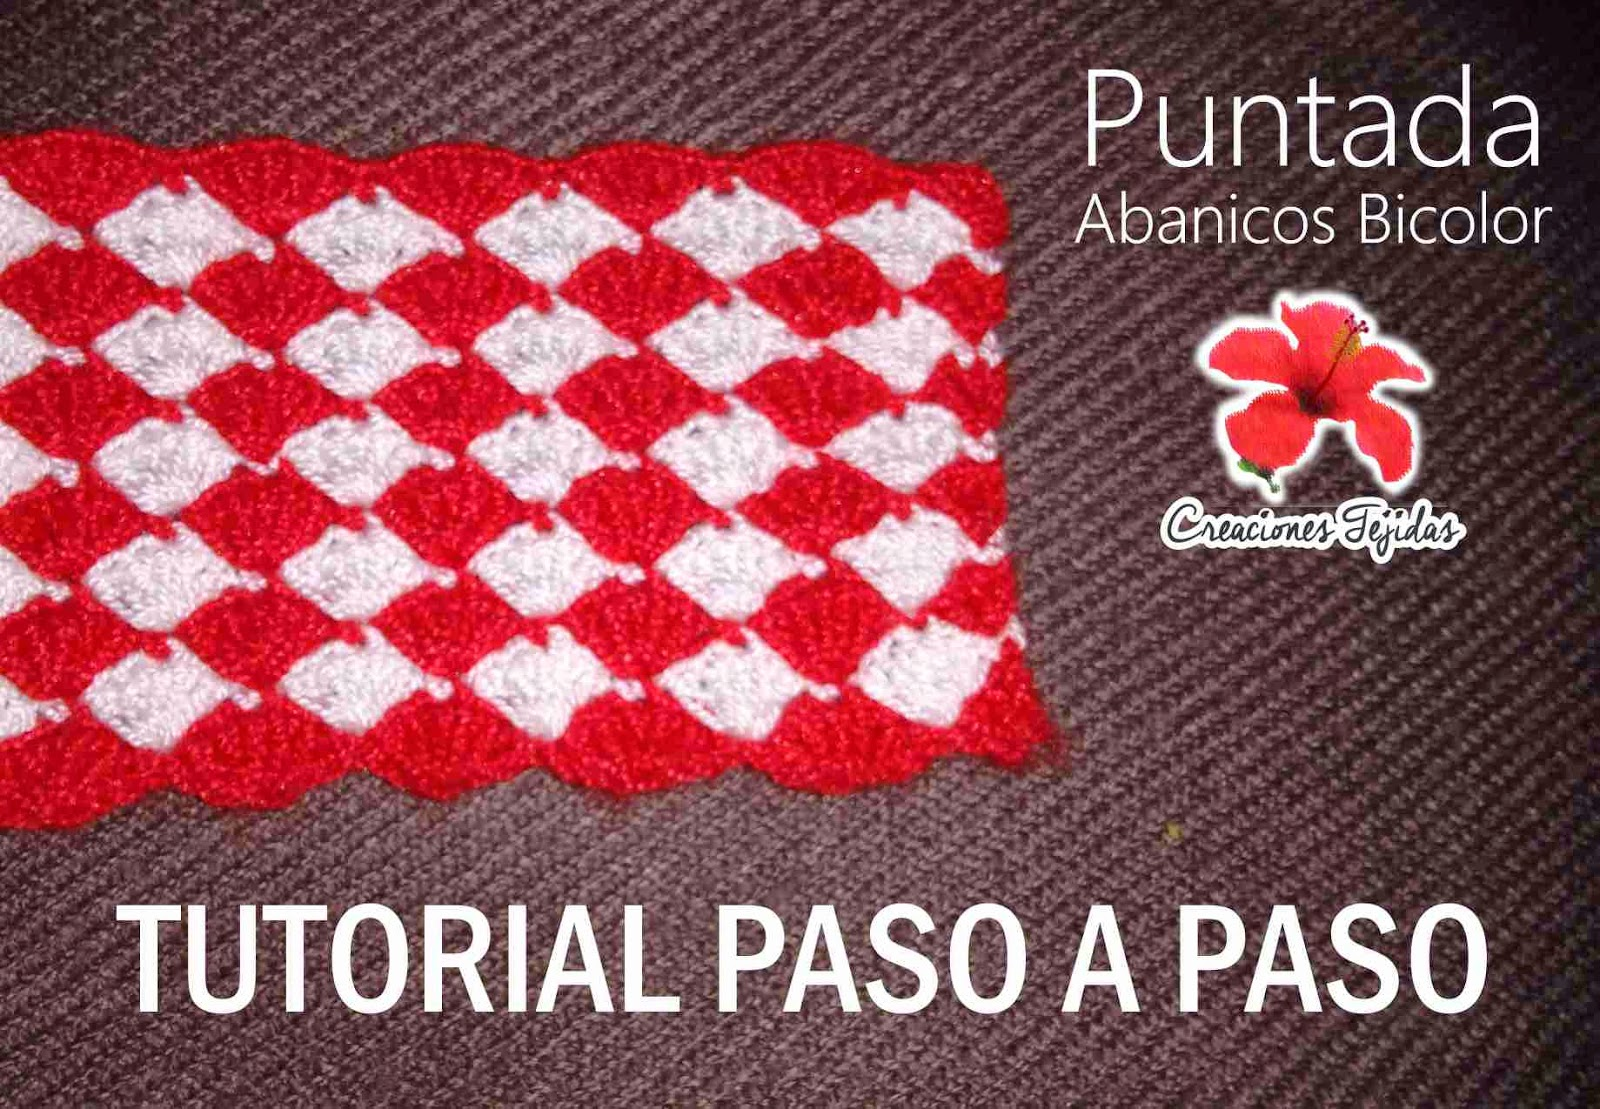 #T1 Puntada Abanicos Bicolor - Tutorial Paso a Paso + Video